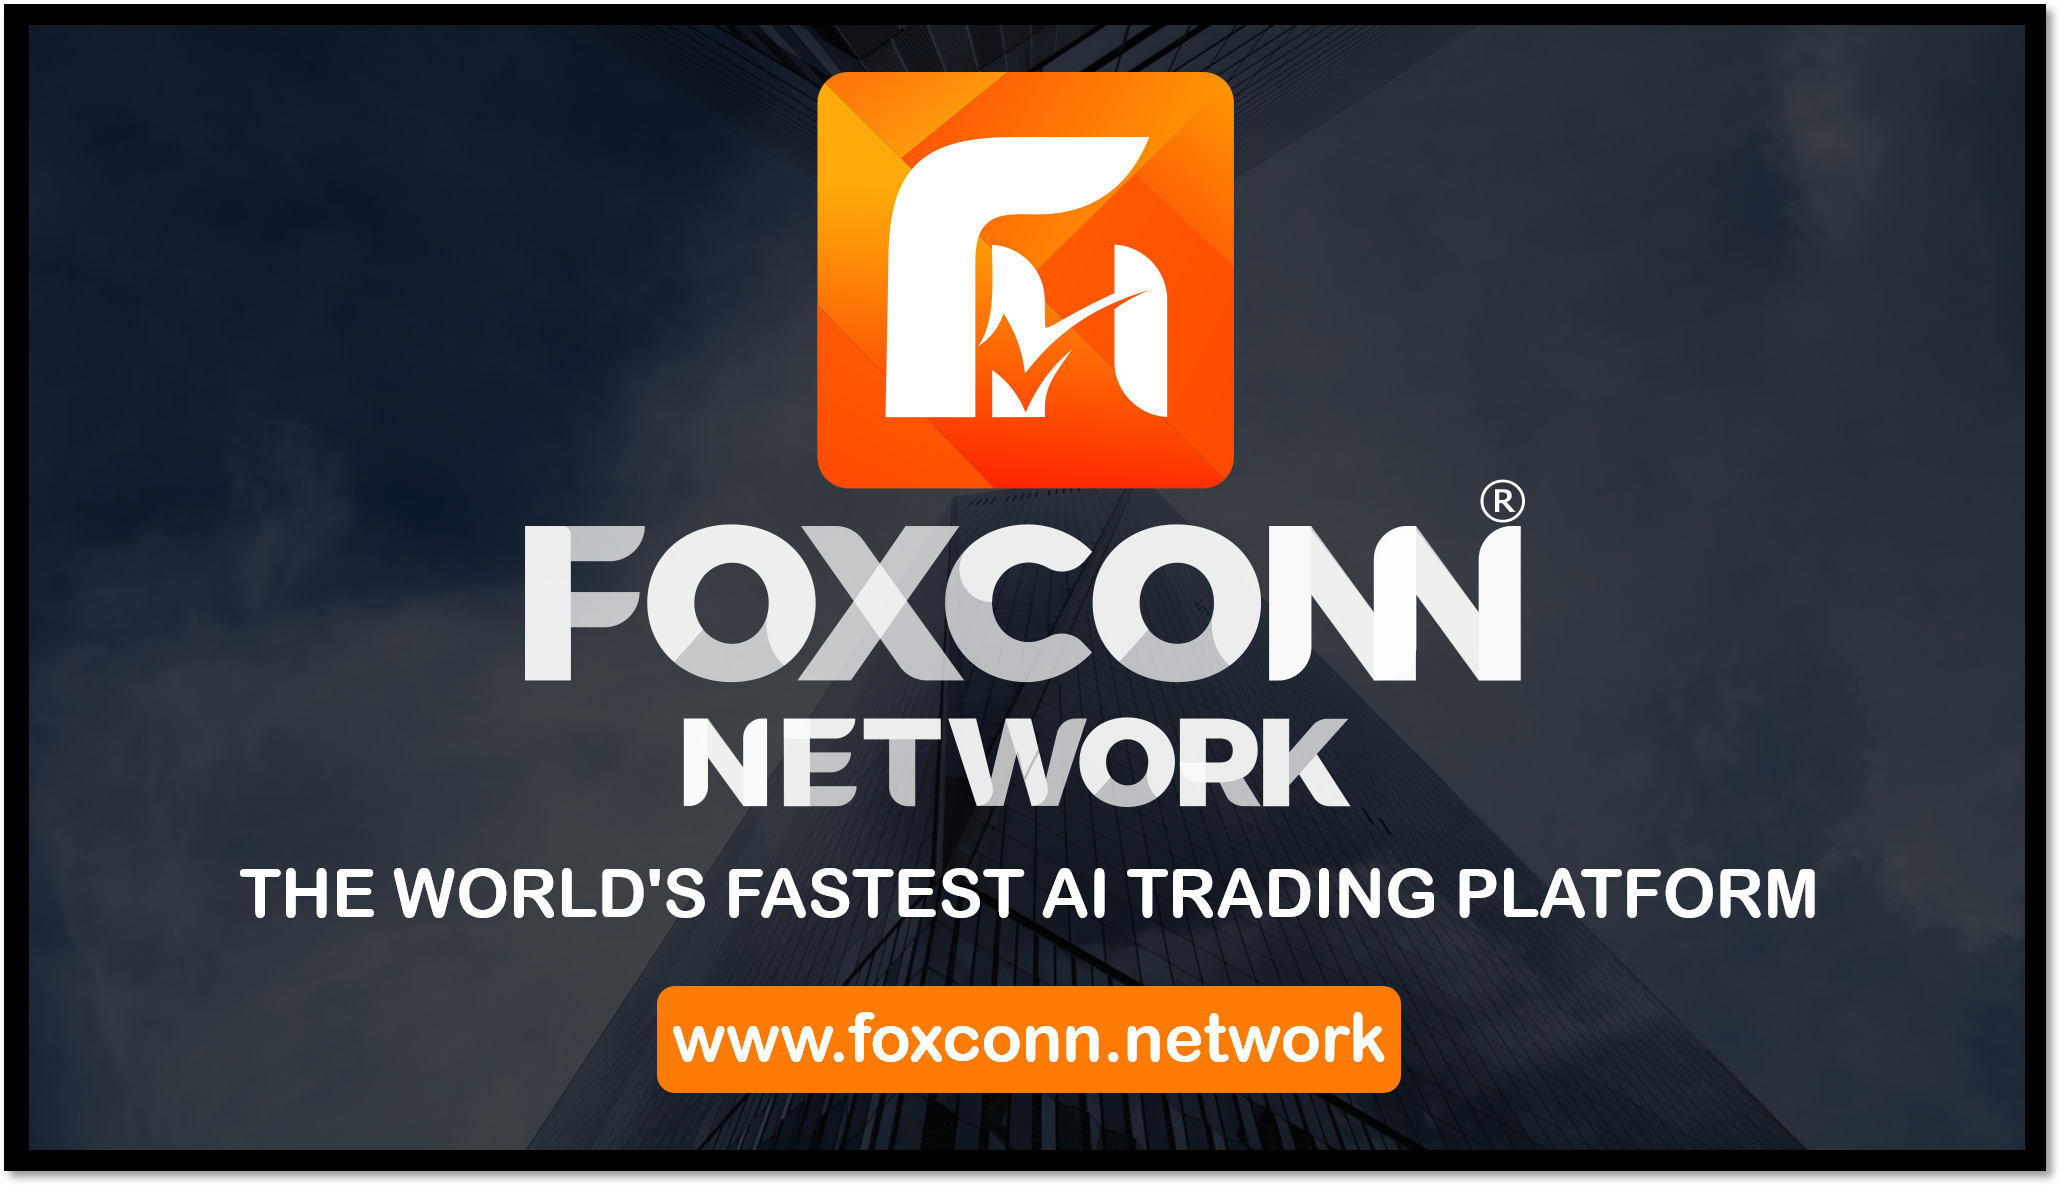 Foxcon Network Announces: Launches Innovative  Bitcoin, Cryptocurrency and Forex Trade Investment Management Platform for Traders and investors